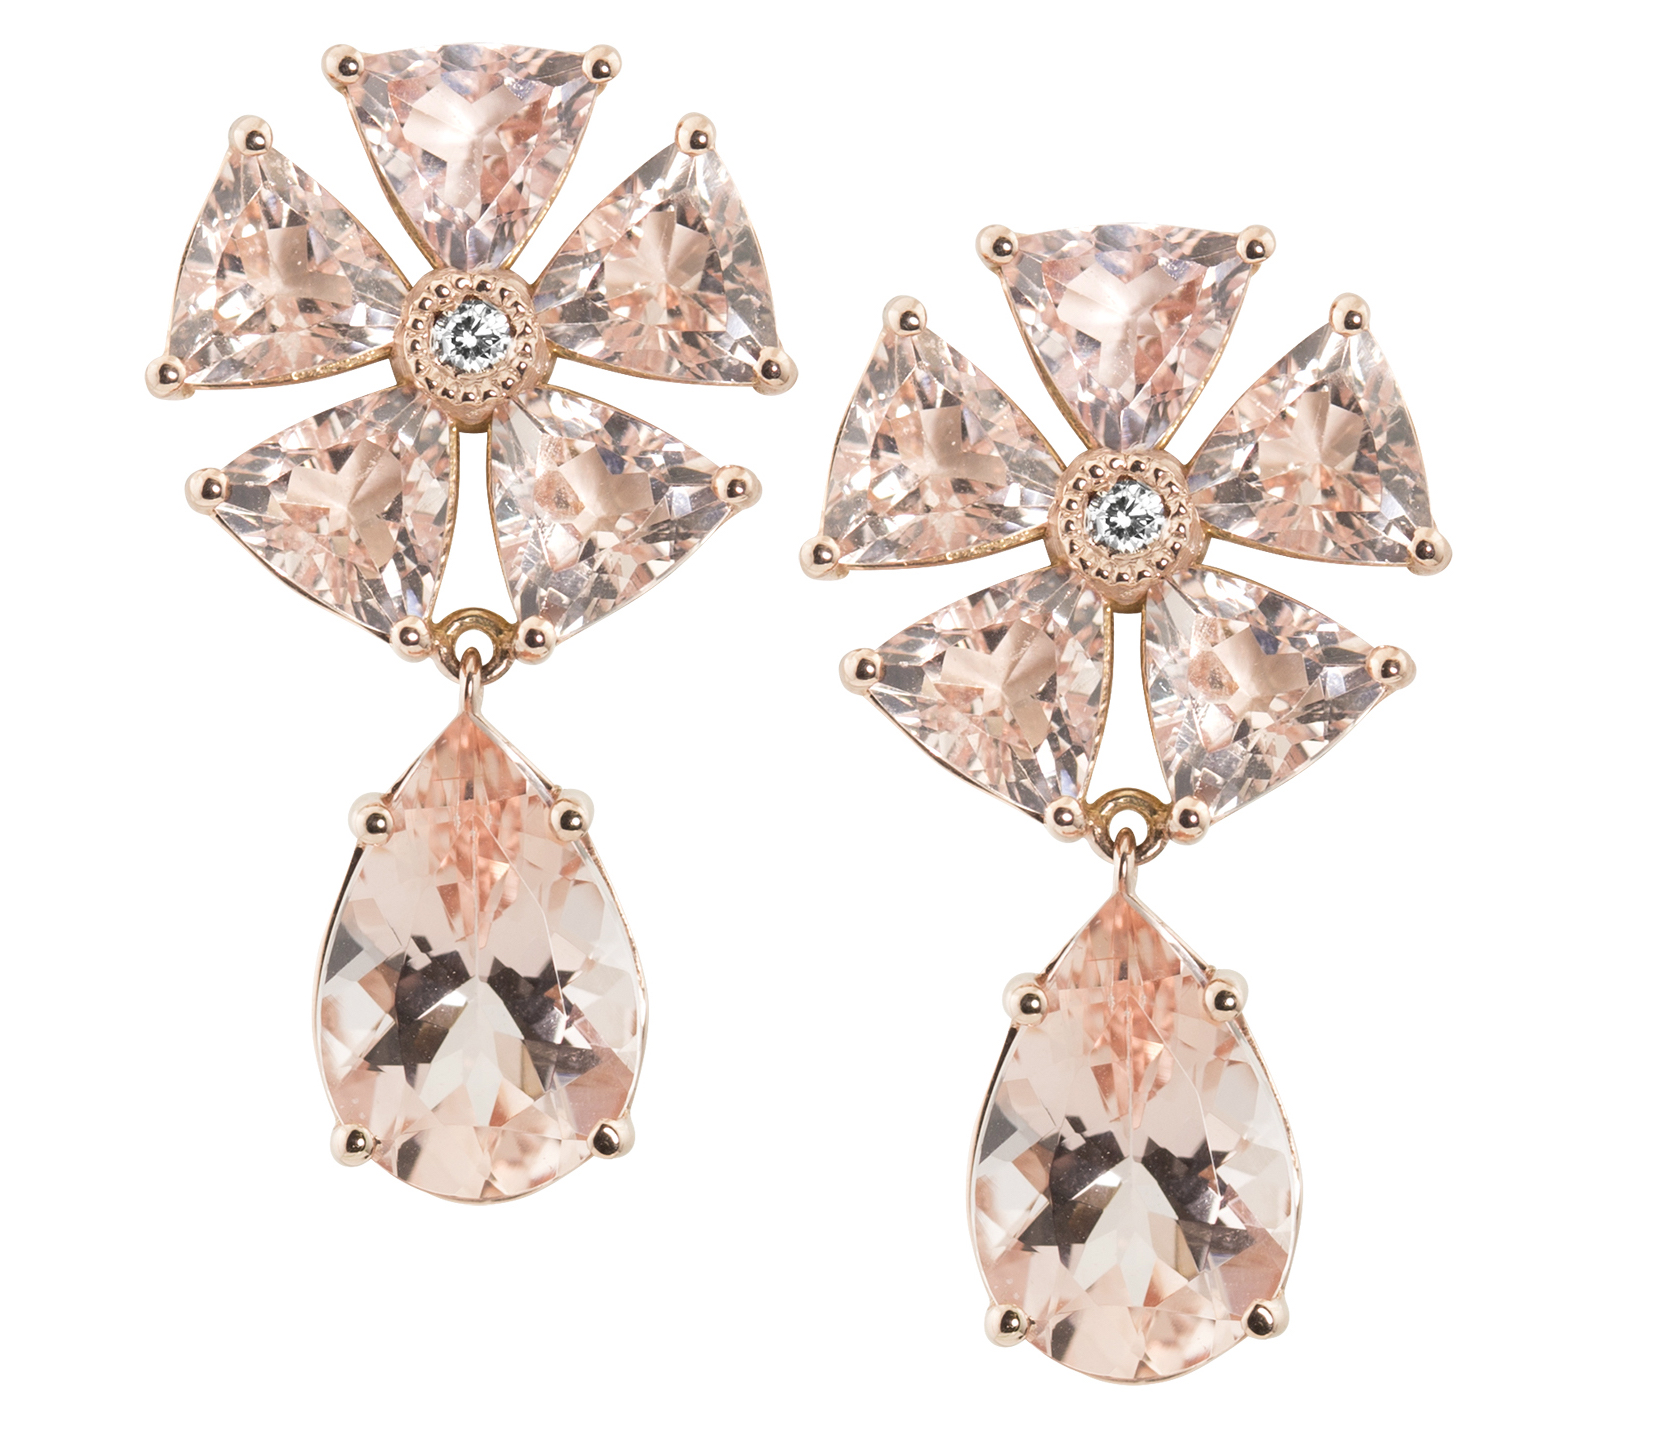 Julez Bryant morganite earrings | JCK On Your Market